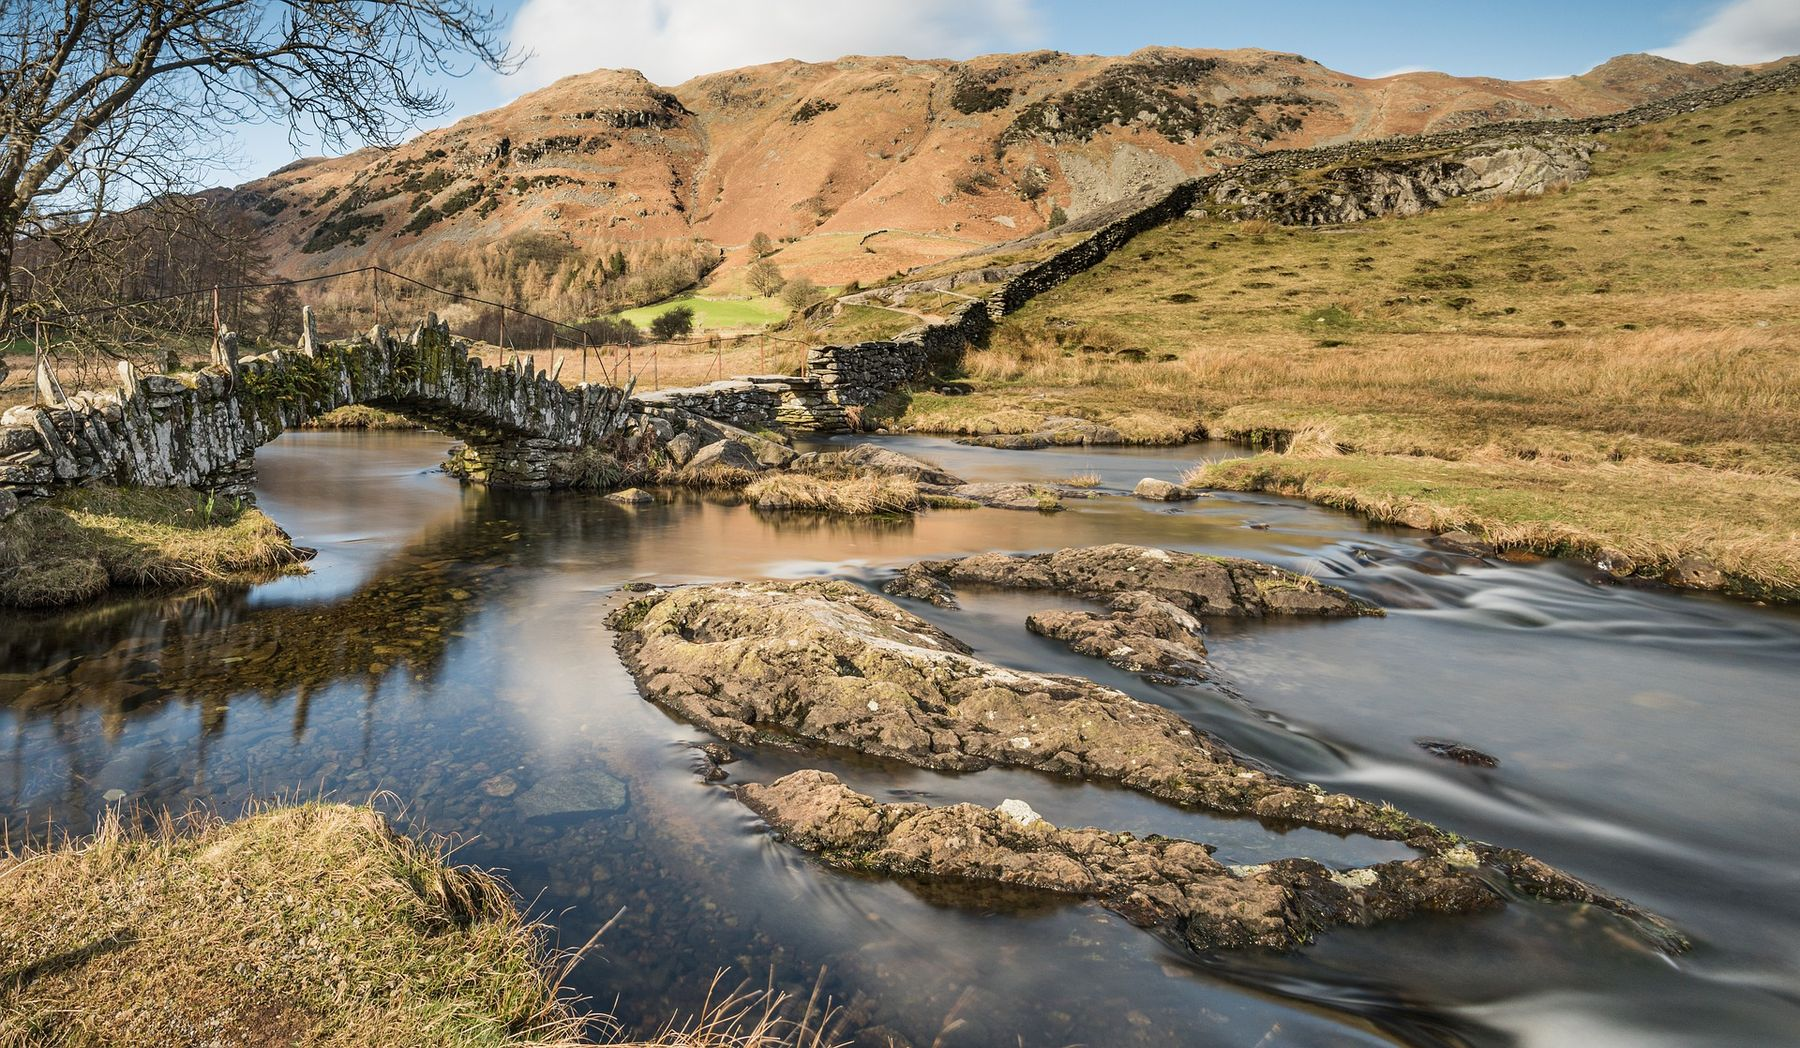 Slater bridge in the Lake District, an old stone bridge spanning a calm river in remote countryside